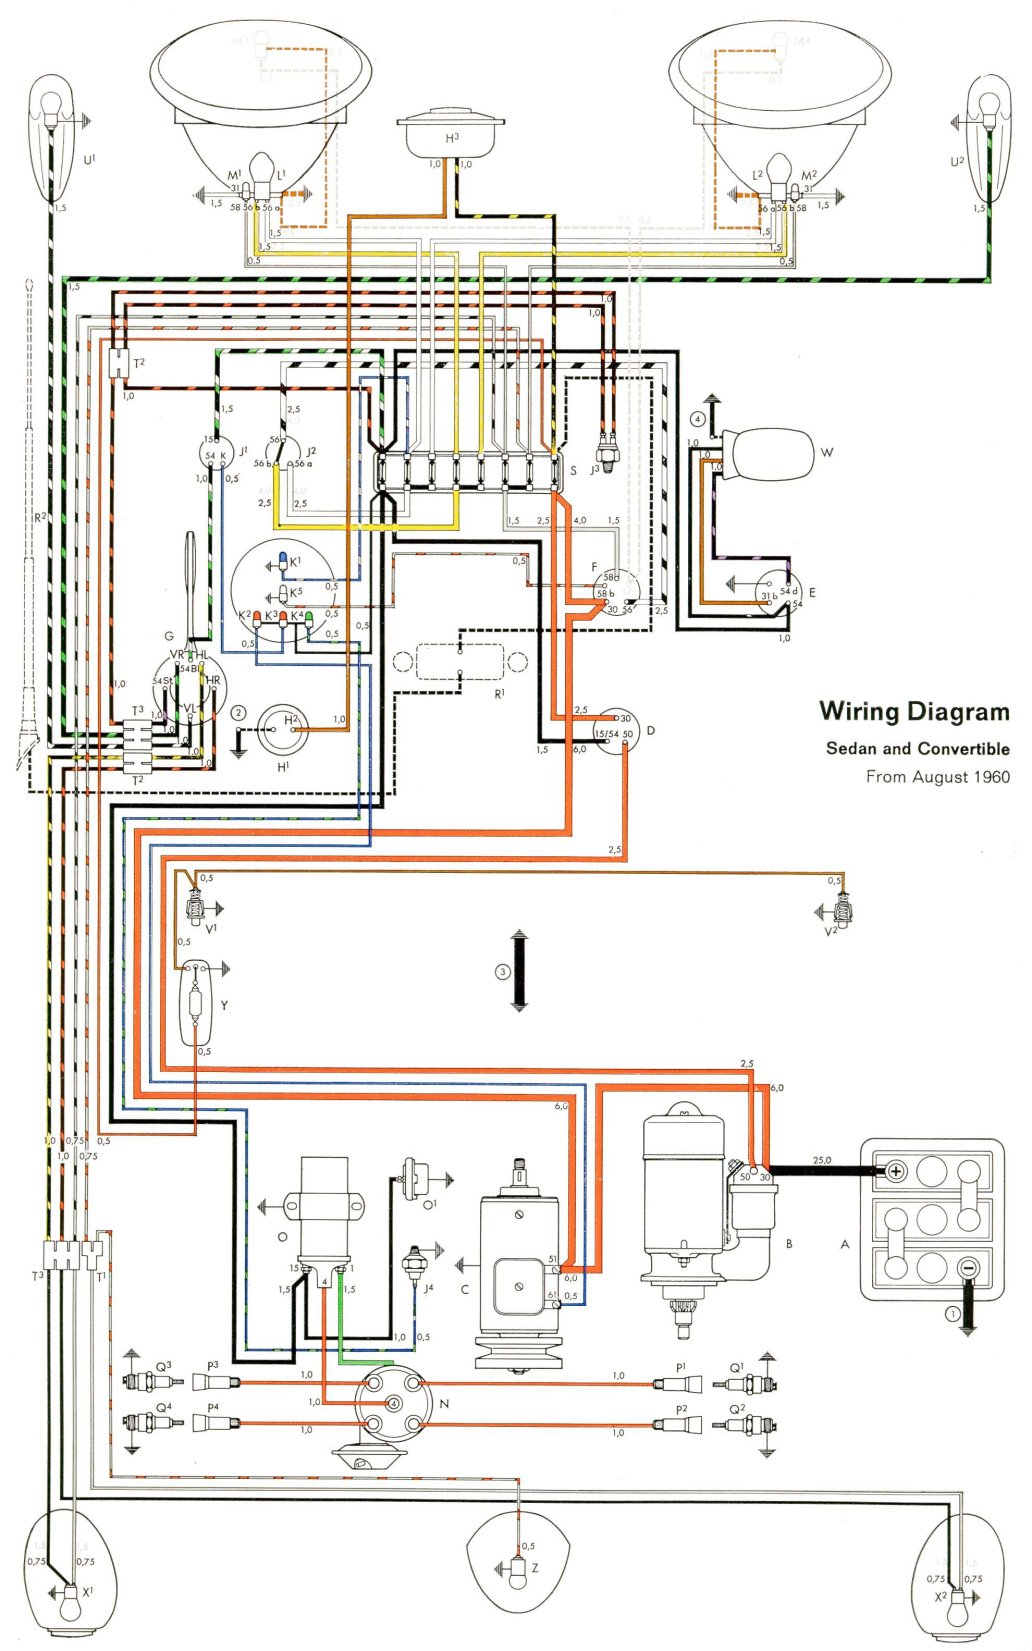 bug_61 1961 beetle wiring diagram thegoldenbug com vw beach buggy wiring diagram at pacquiaovsvargaslive.co